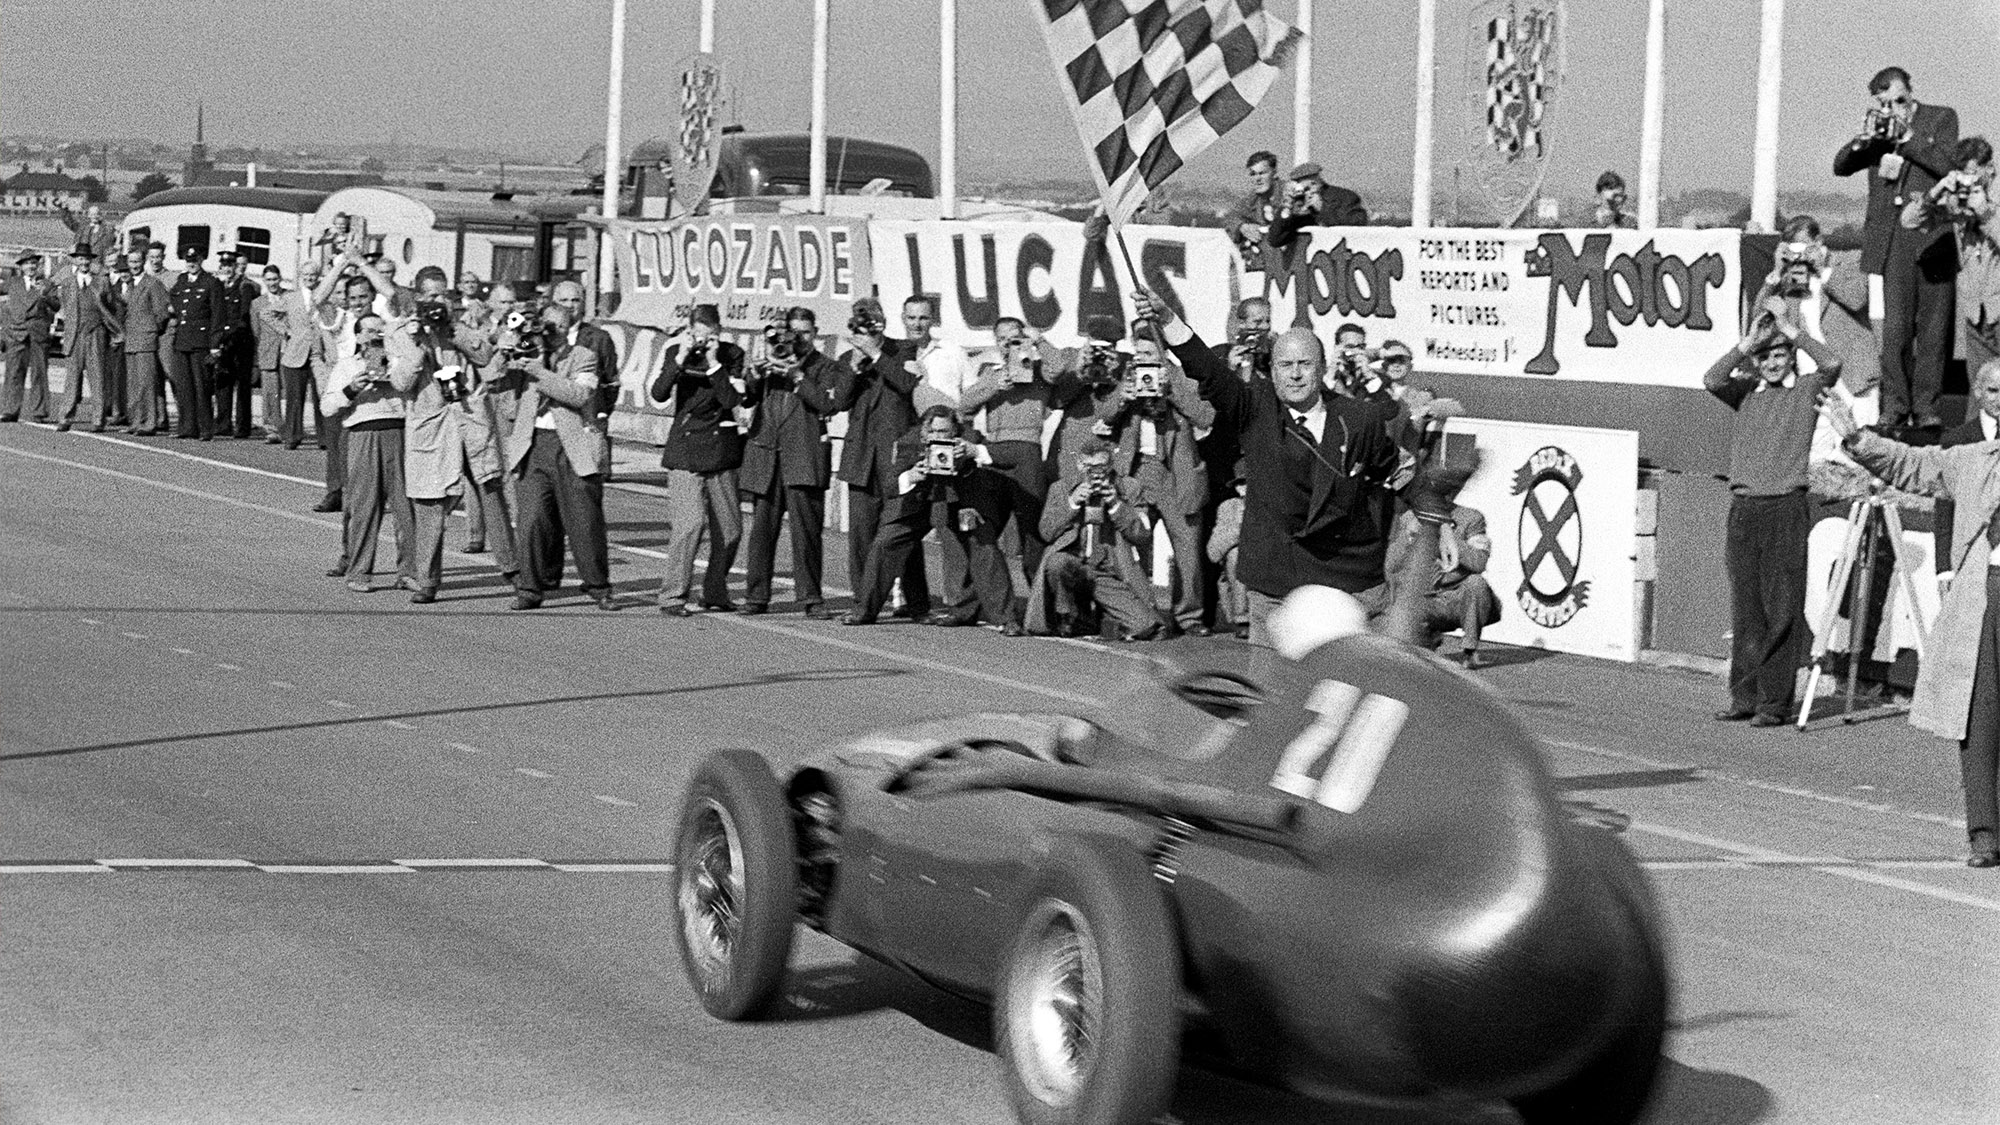 Stirling Moss winning the 1957 British Grand Prix at Aintree in his Vanwall